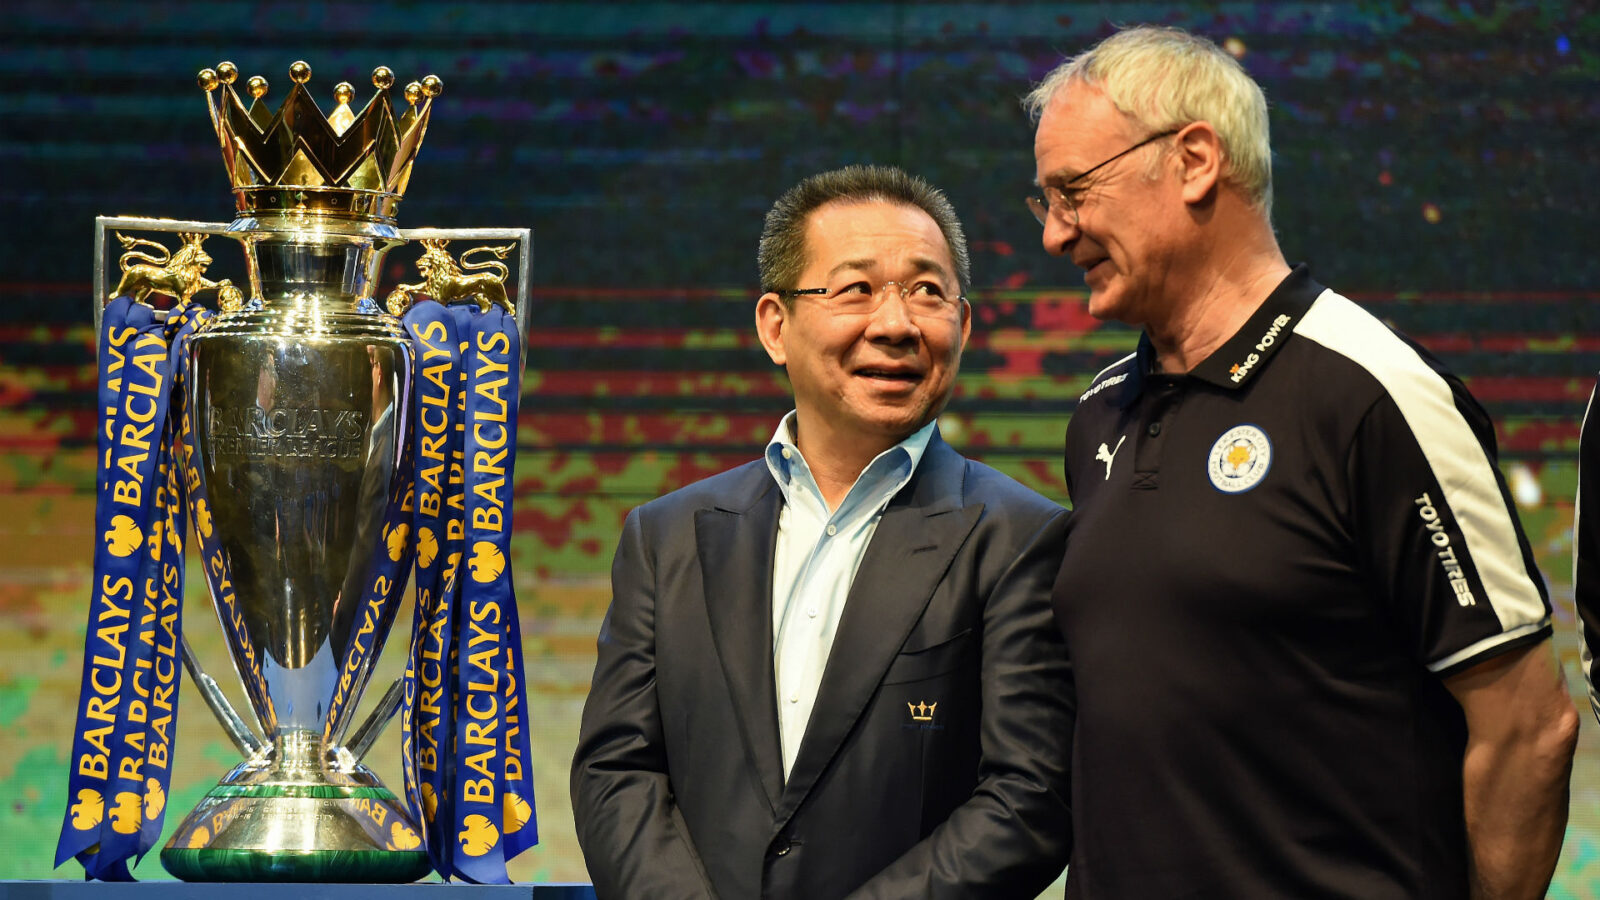 Owner Vichai Srivaddhanaprabha celebrating Leicester City's first Premiership crown with coach Claudio Ranieri.